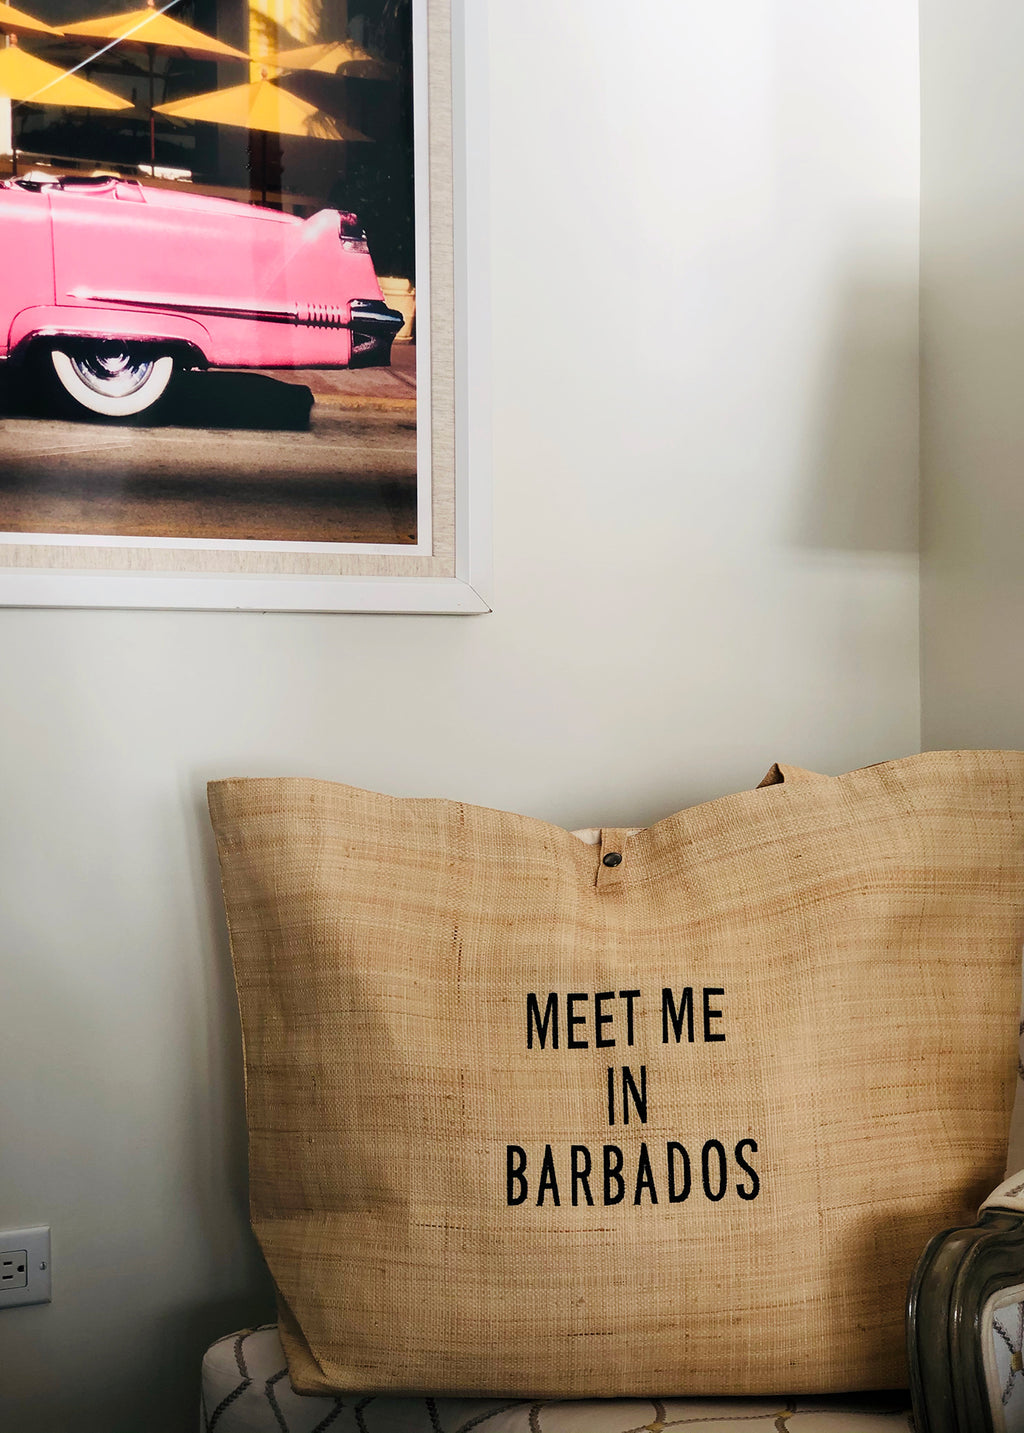 MEET ME IN BARBADOS JUMBO TOTE